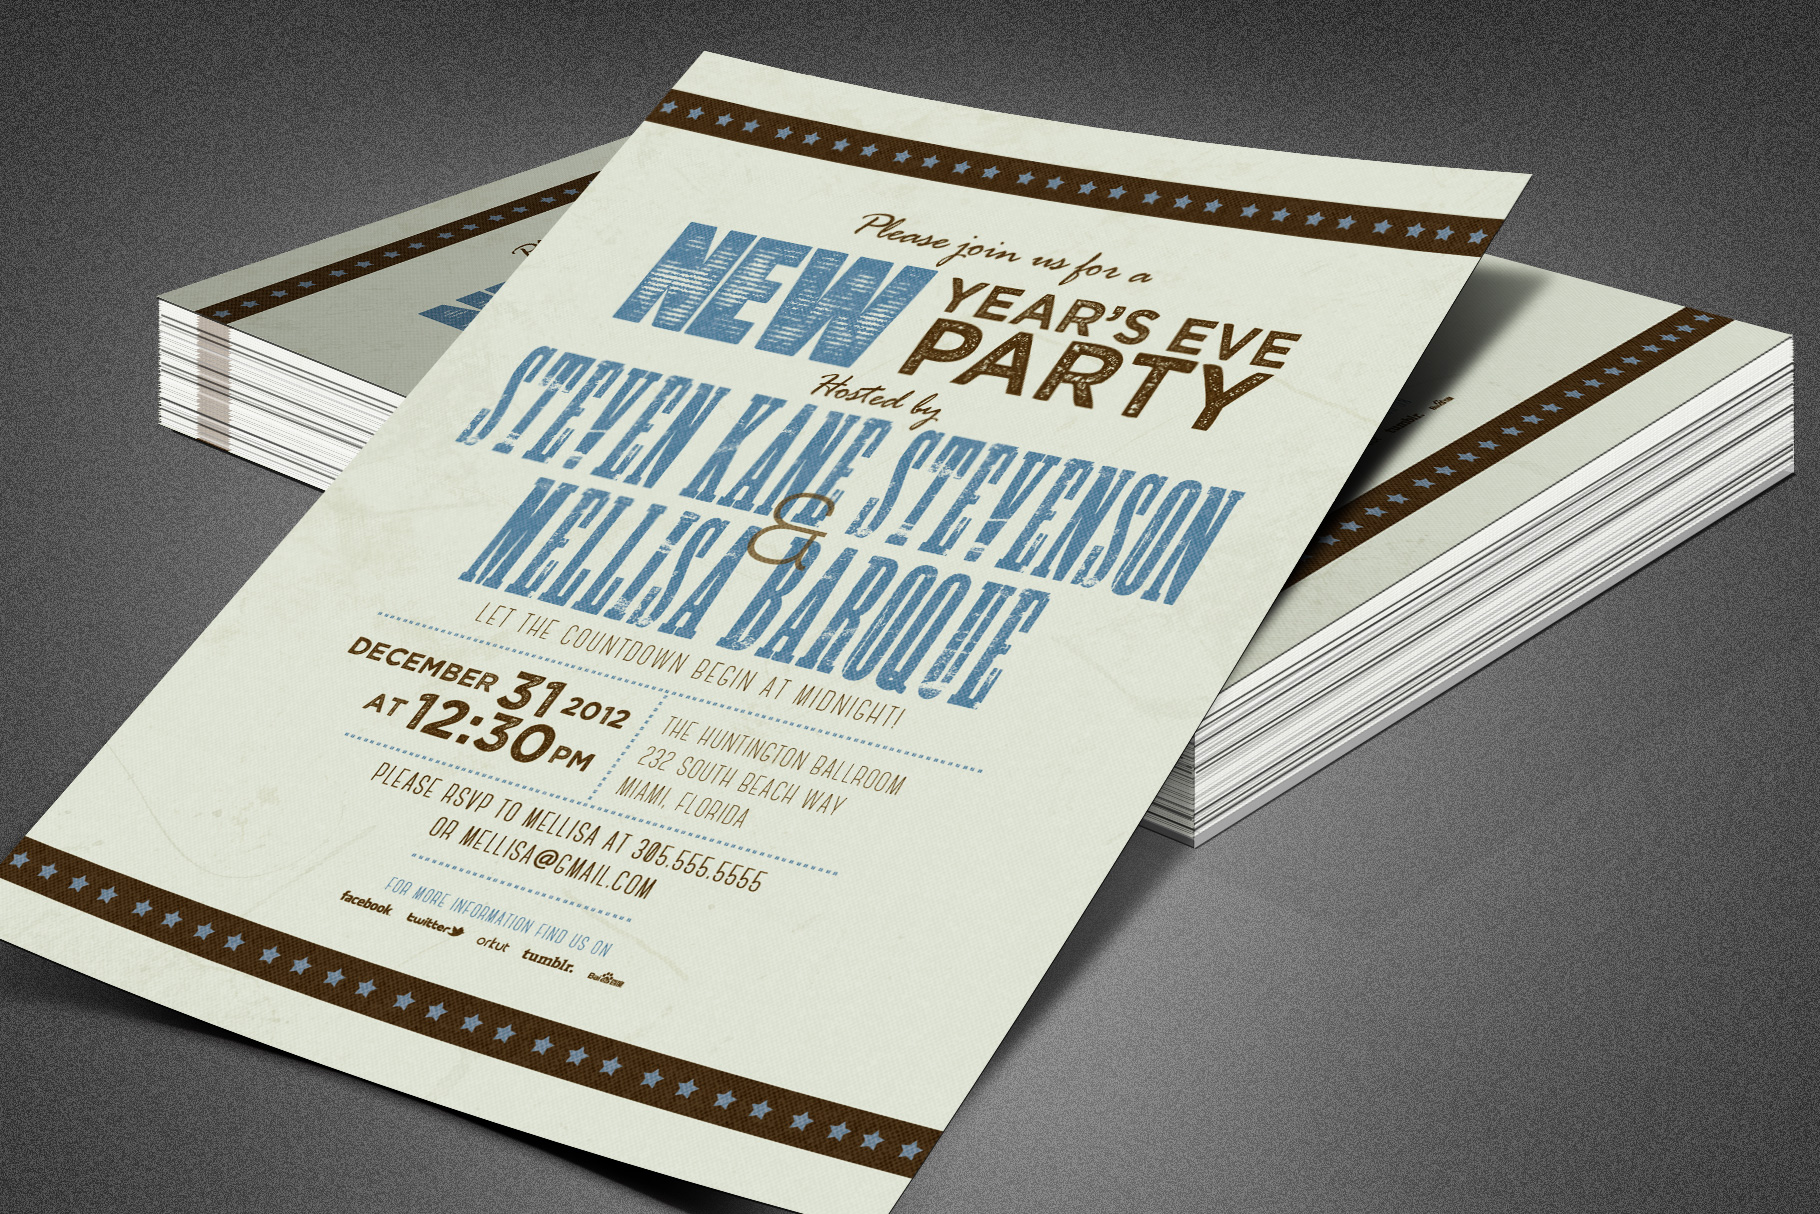 Retro New Year Party Invite Card Template example image 5